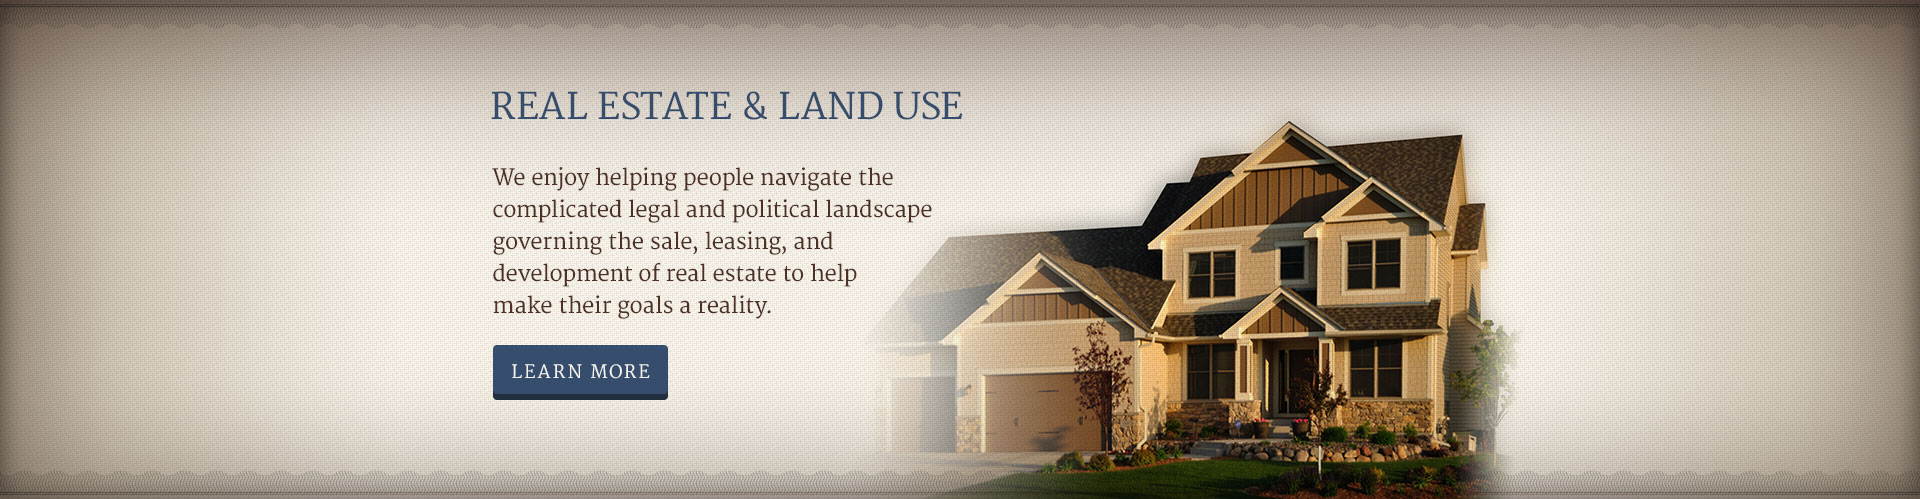 REAL ESTATE & LAND USE - We enjoy helping people navigate the complicated legal and political landscape governing the sale, leasing, and development of real estate to help make their goals a reality.